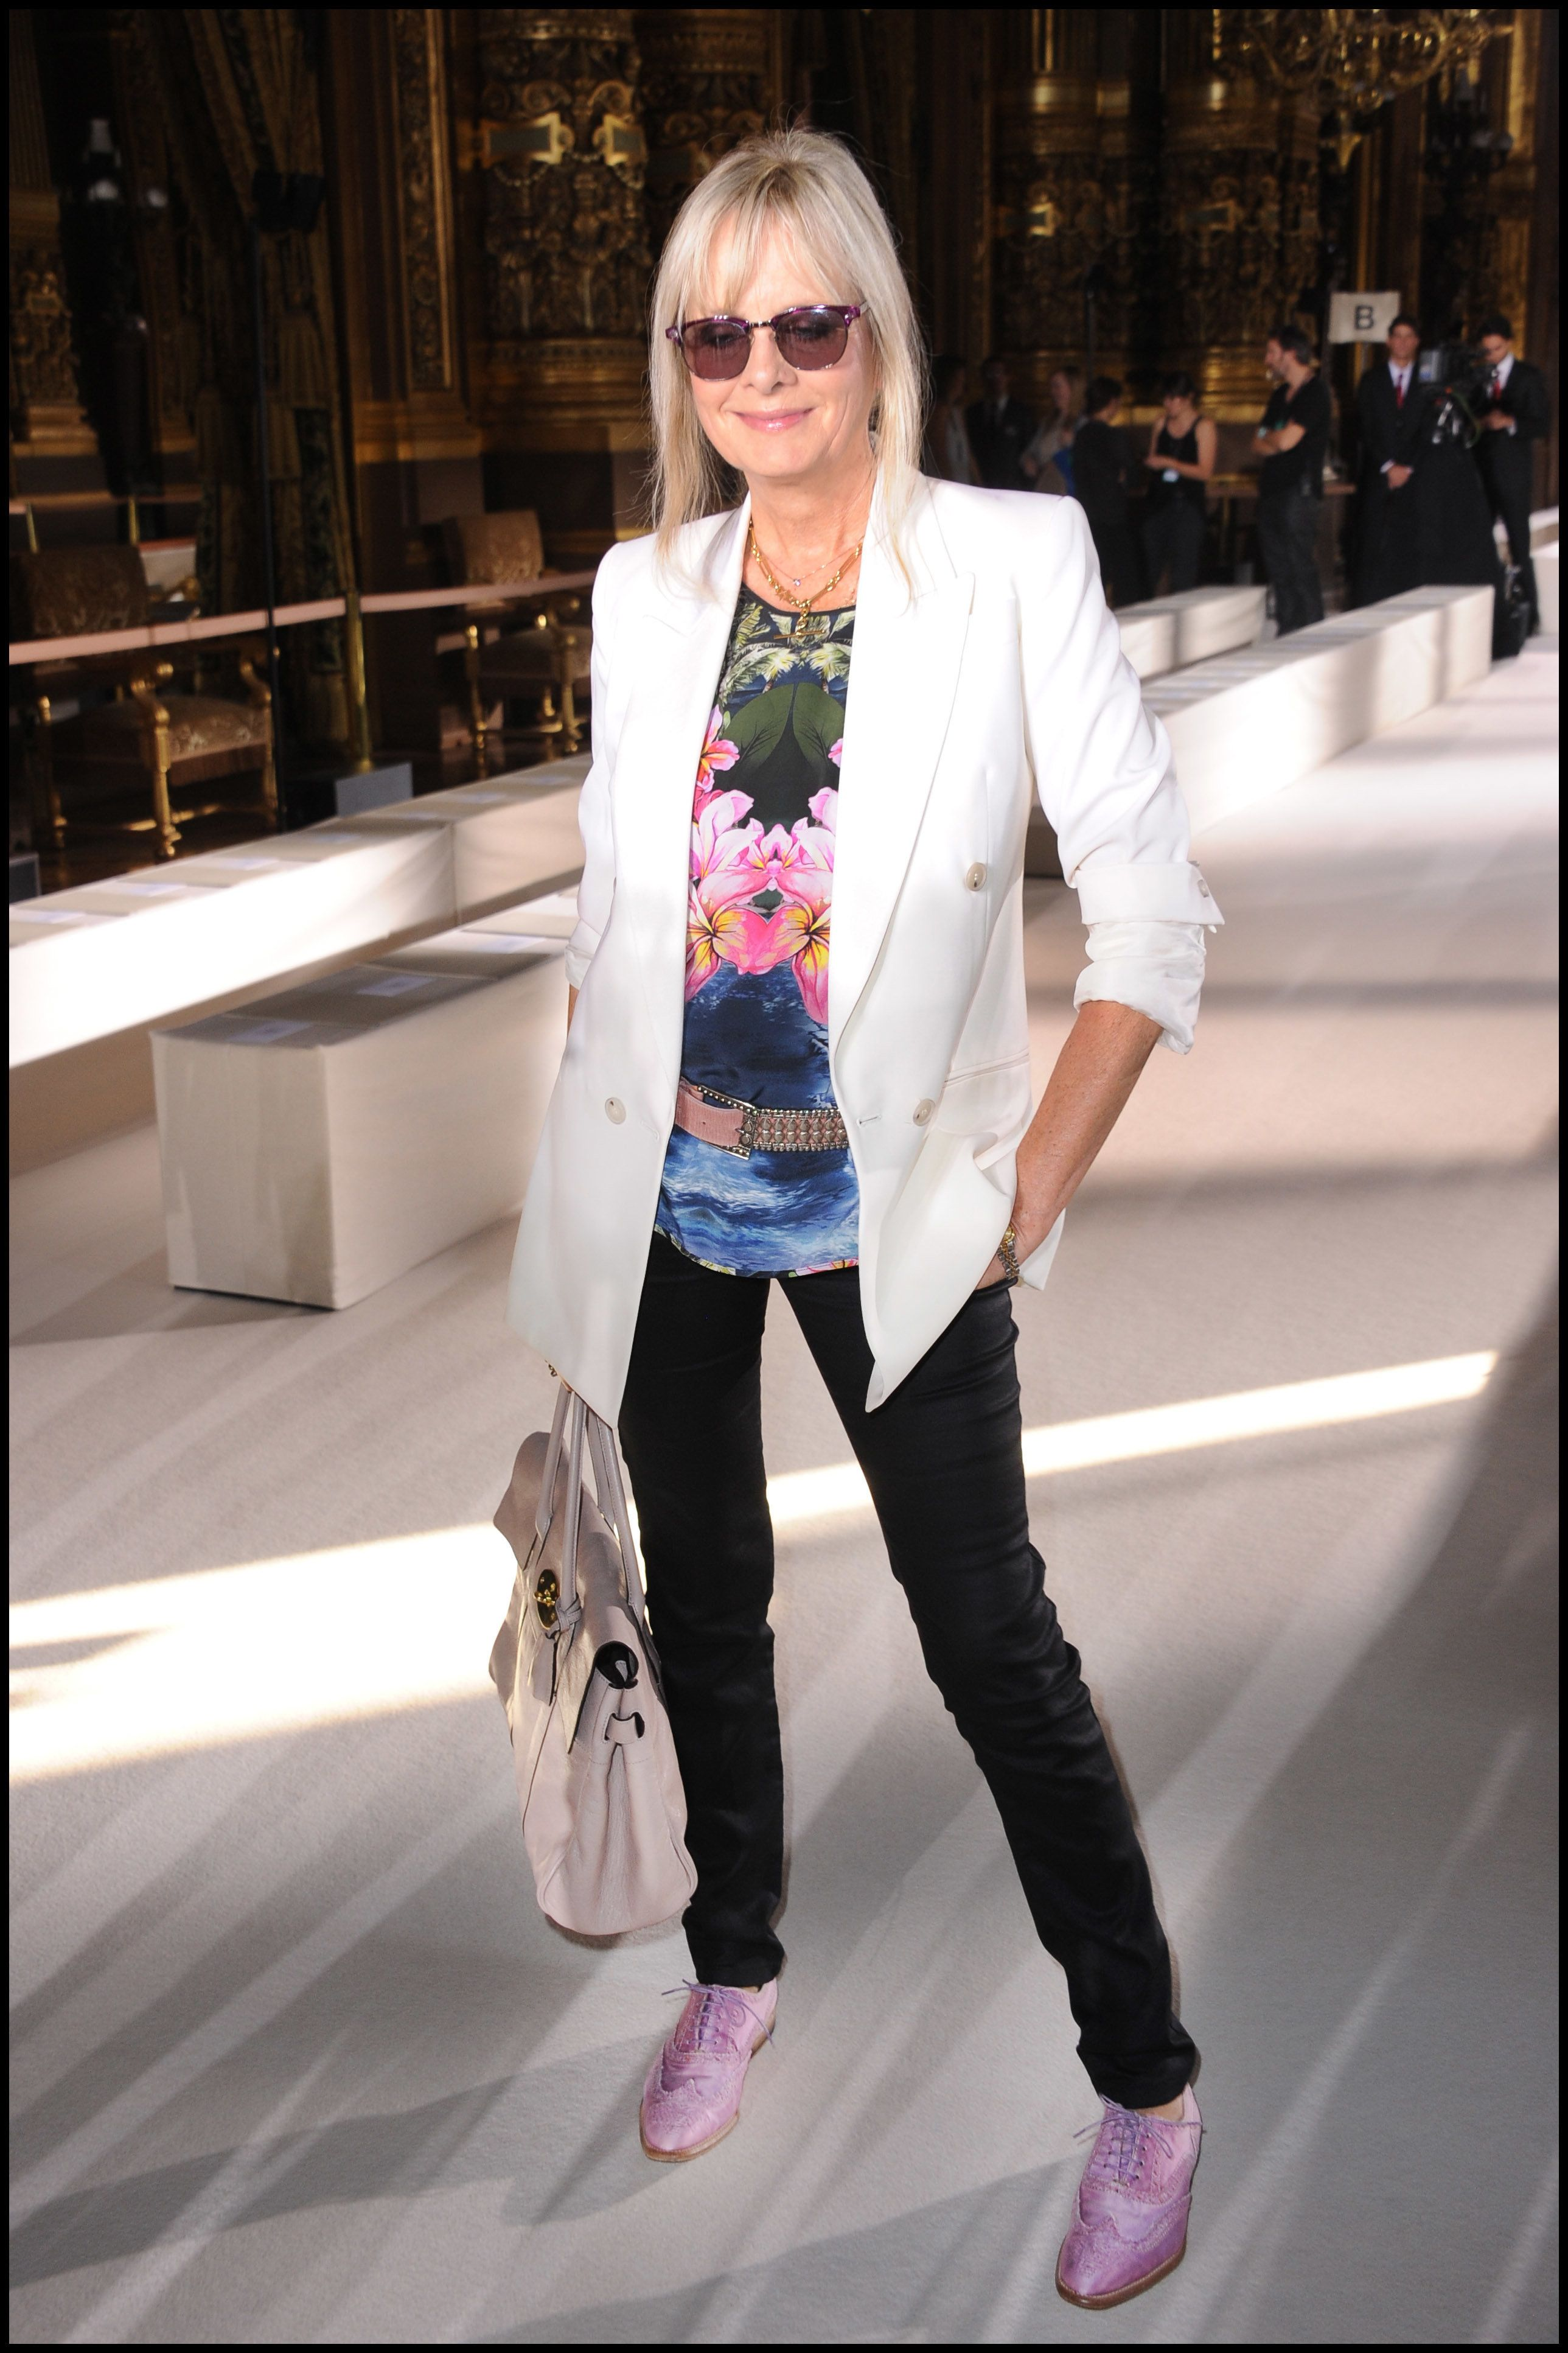 Twiggy attends the Stella McCartney ready-to-wear spring/summer 2012 show during Paris Fashion Week.